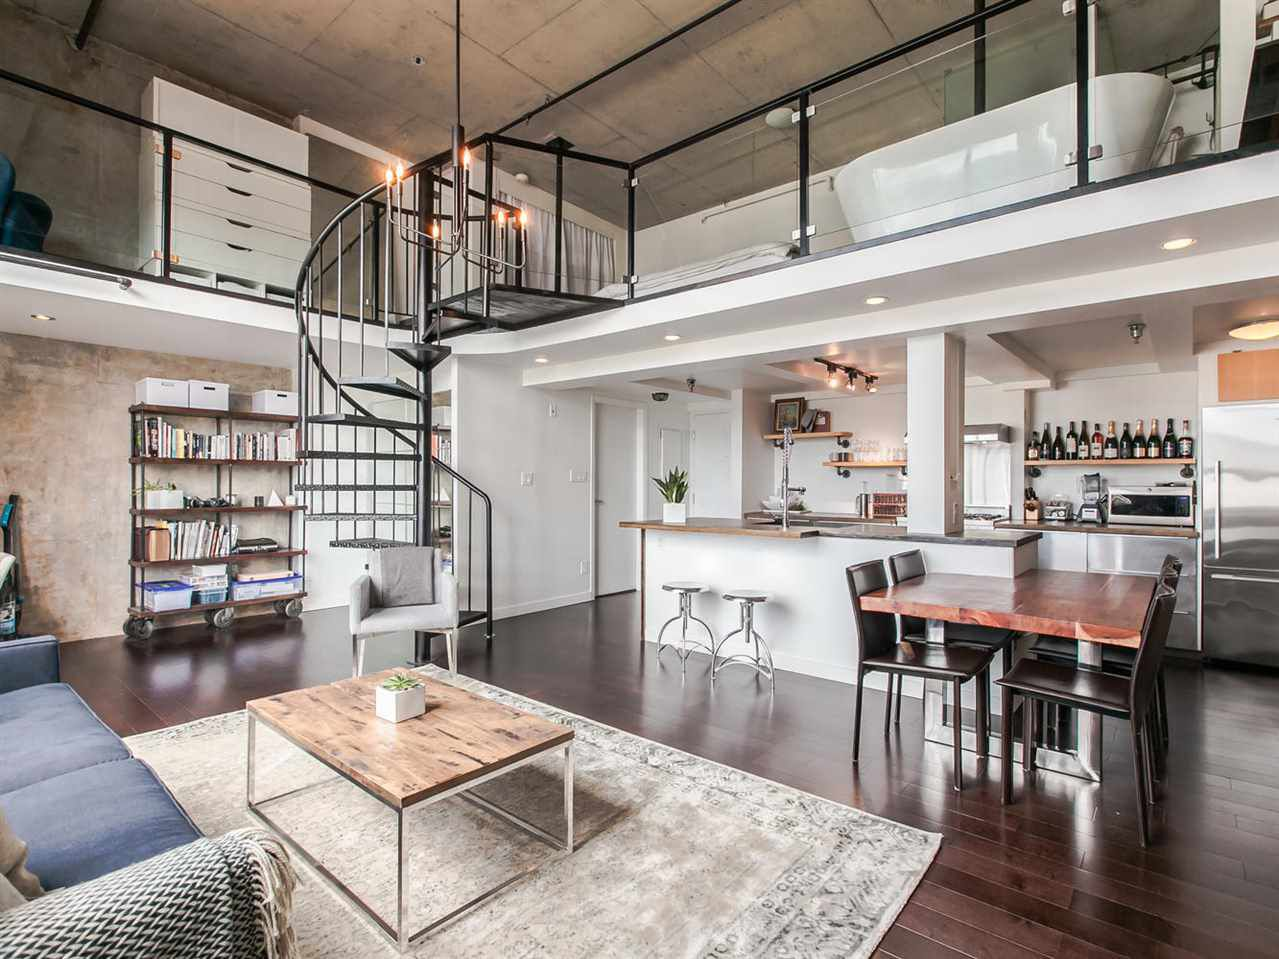 """Main Photo: 406 2001 WALL Street in Vancouver: Hastings Condo for sale in """"CANARY ROW"""" (Vancouver East)  : MLS®# R2085922"""